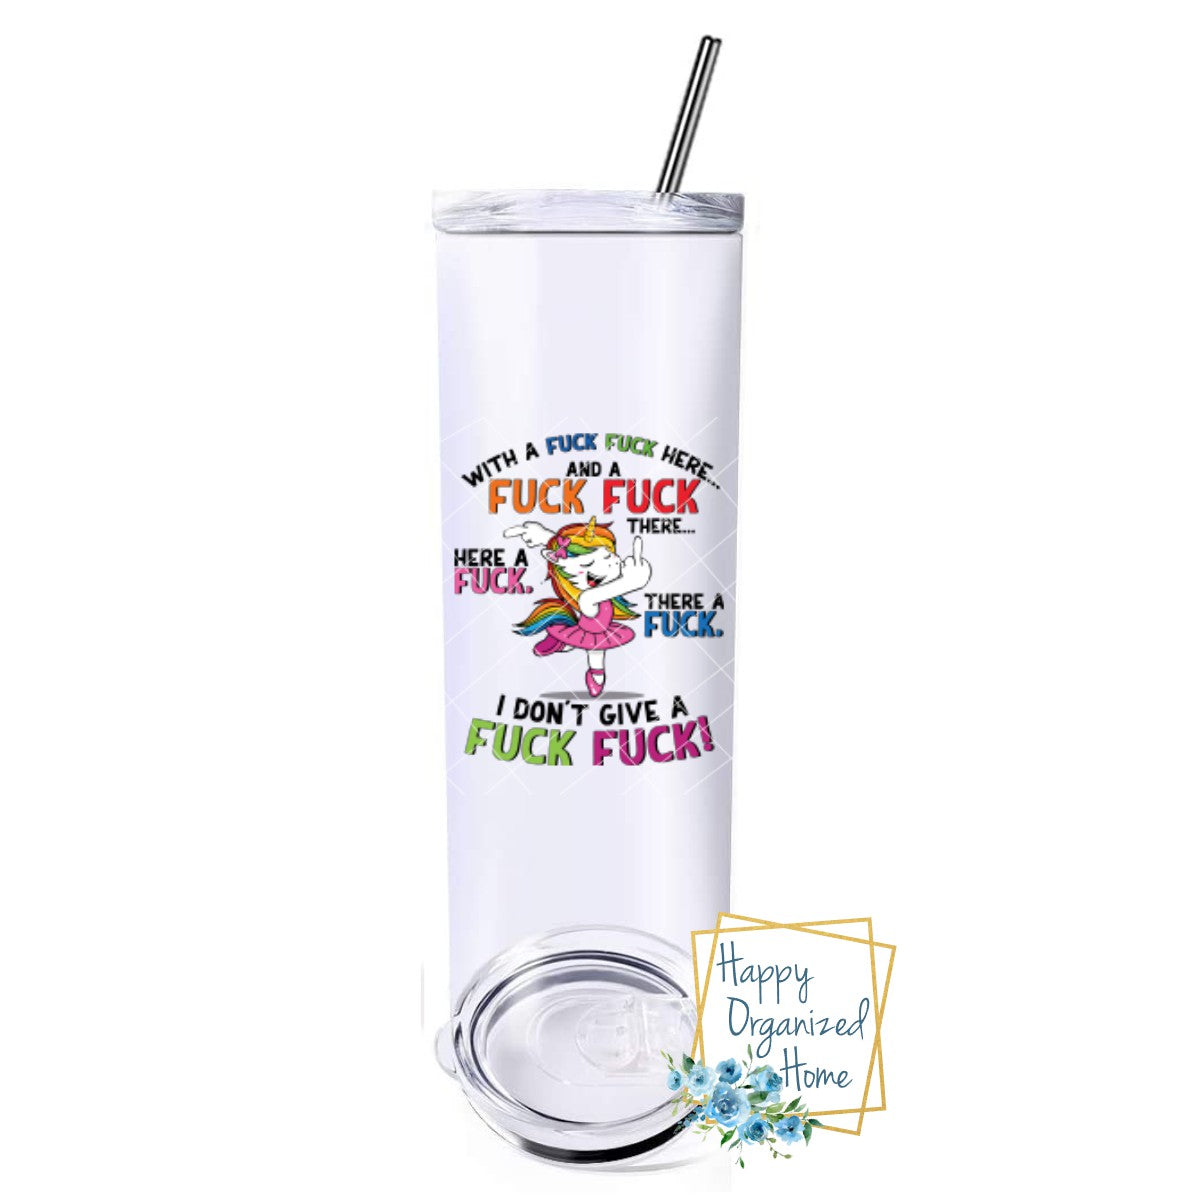 With a F*ck F*ck Here and a F*ck F*ck there - Insulated tumbler with metal straw